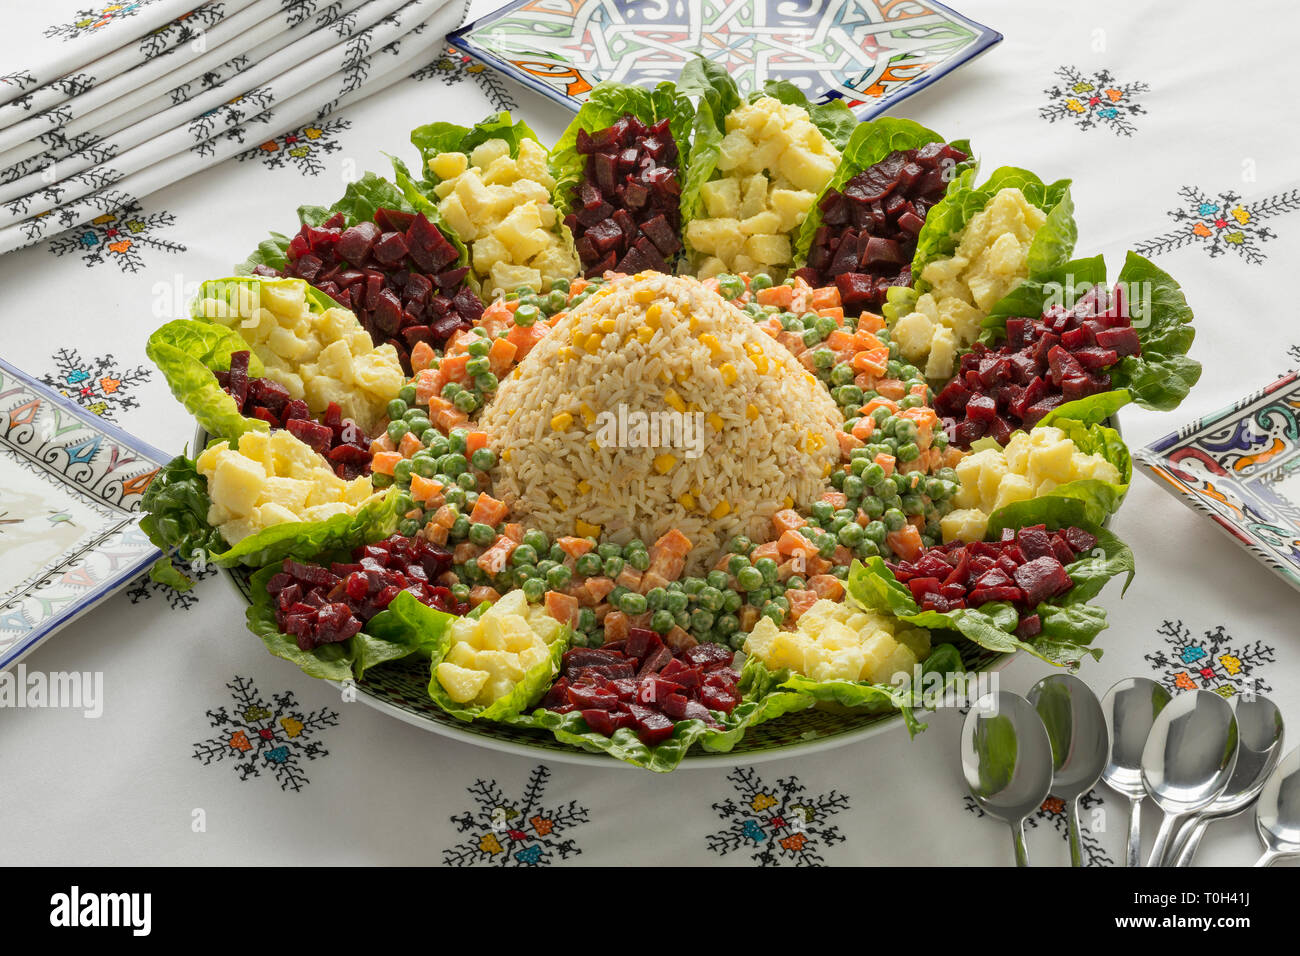 Dish with traditional festive Moroccan mixed salad on a nice set table with embroidered tablecloth - Stock Image